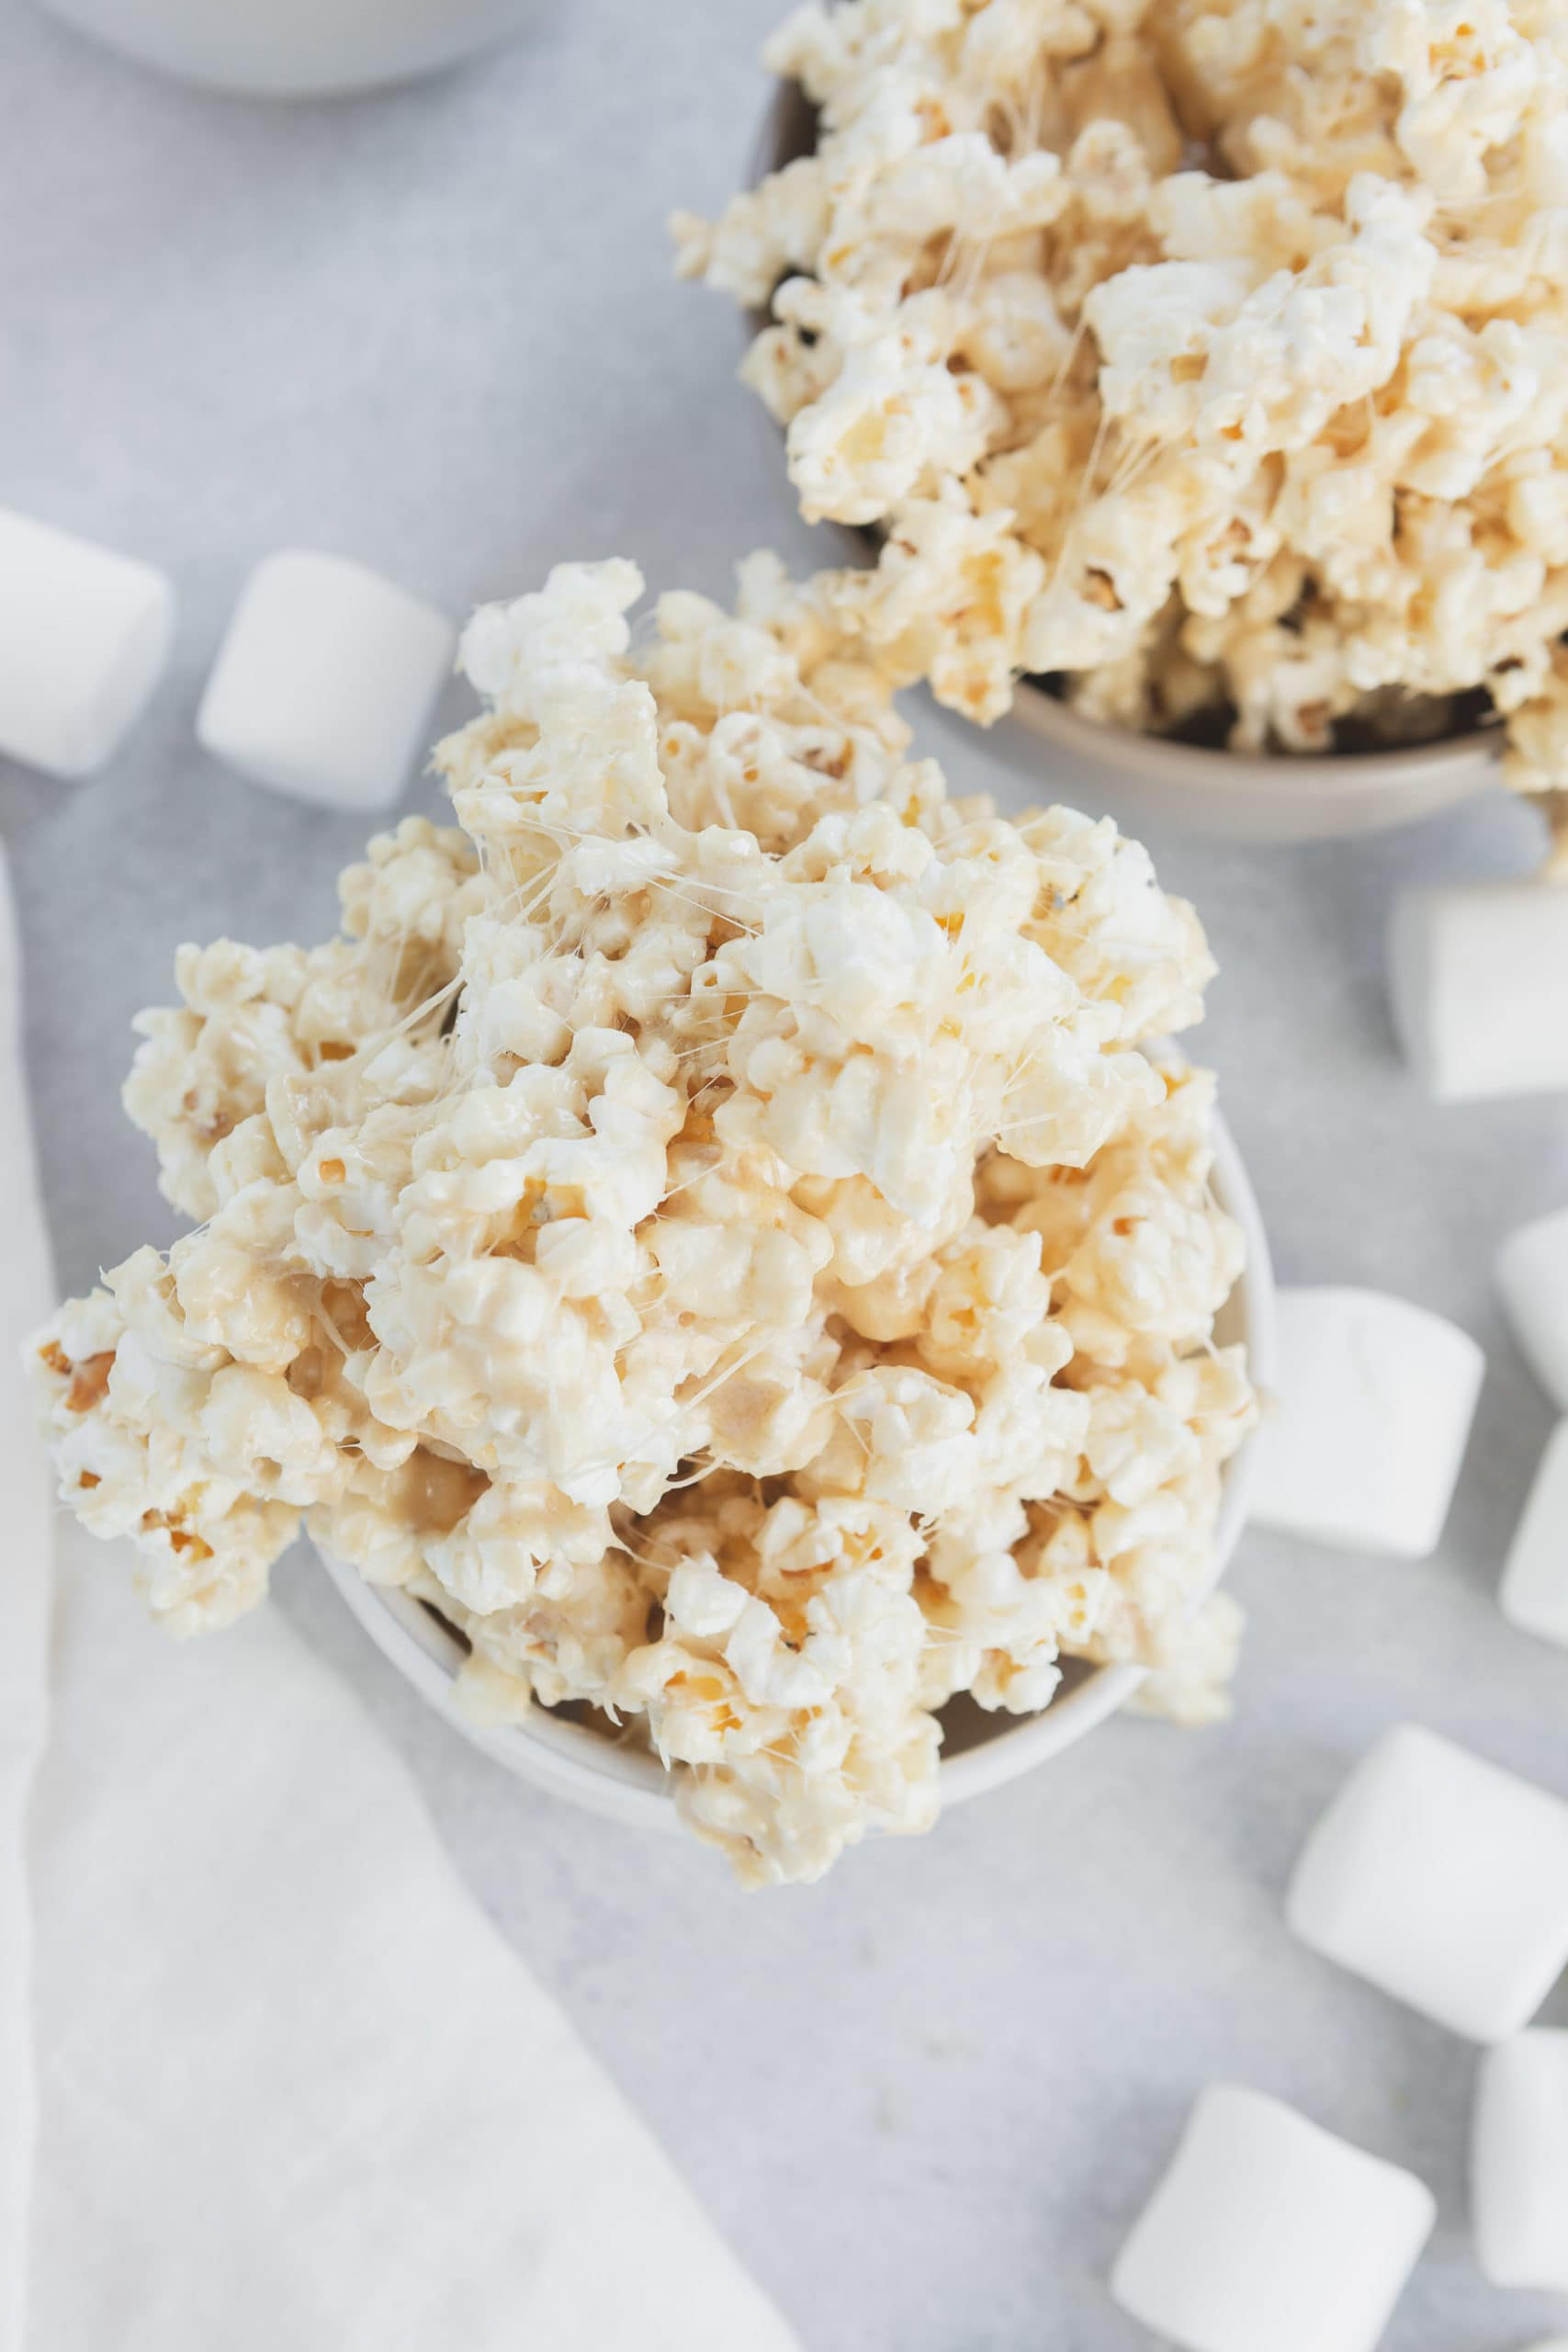 a photo of a small white bowl overflowing with gooey marshmallow popcorn.